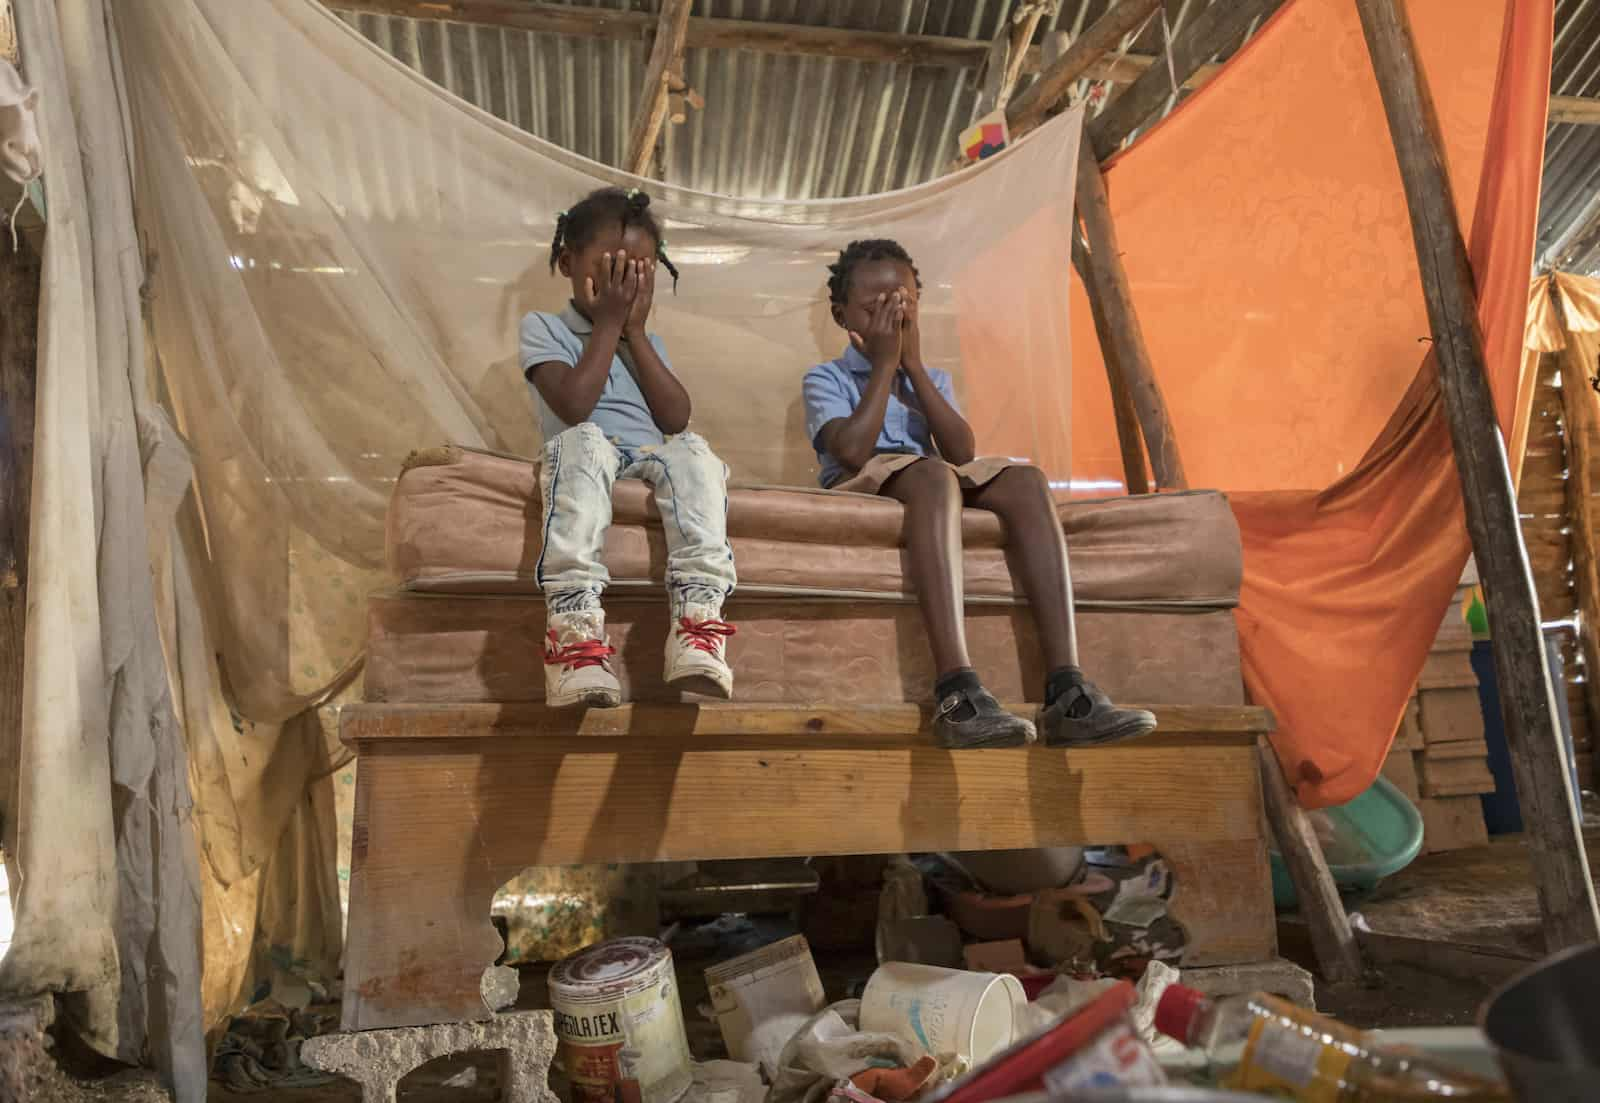 Two girls sit on a bed with their faces covered in prayer. The bed is raised up with concrete blocks. A mosquito net hangs above the bed and the roof is made from corrugated metal.